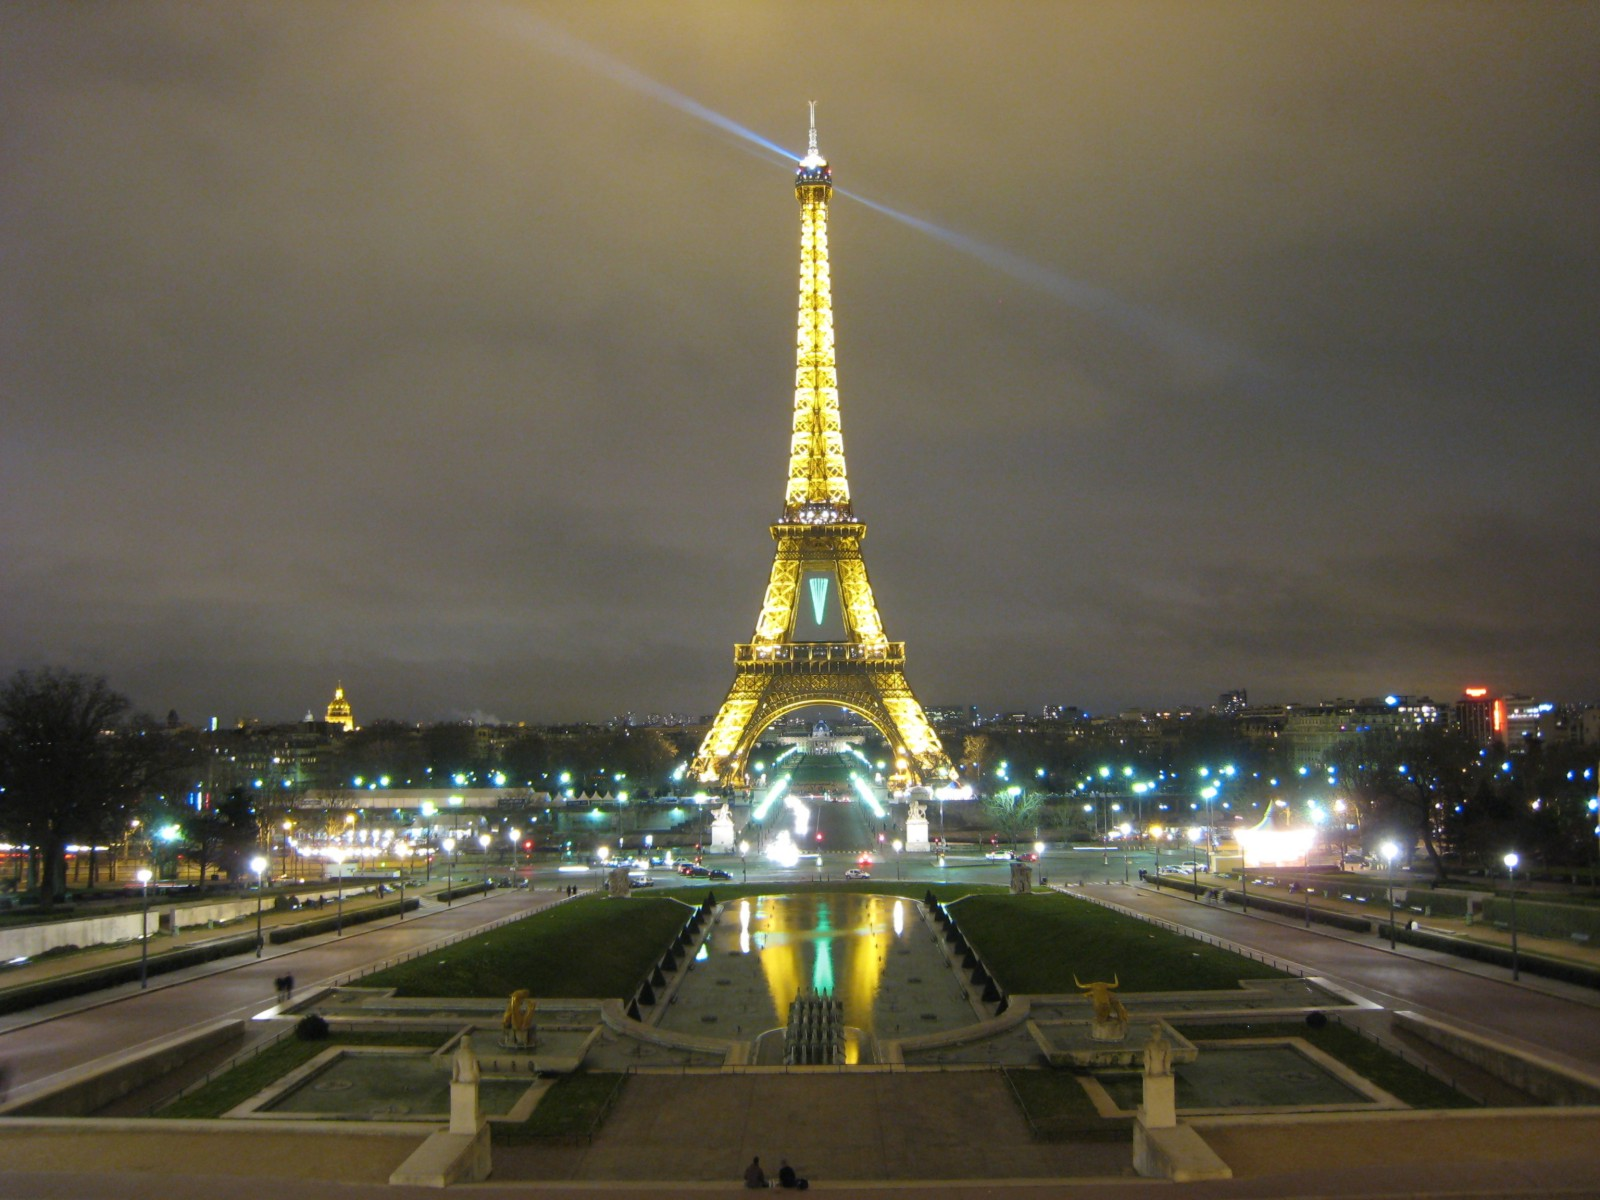 http://3.bp.blogspot.com/-Hrtay8rdHxw/UQfrz9Vbg0I/AAAAAAAAjEs/9MGVdILcDXQ/s1600/Eiffel-Tower-Paris-Night-View-wallpaper.jpg